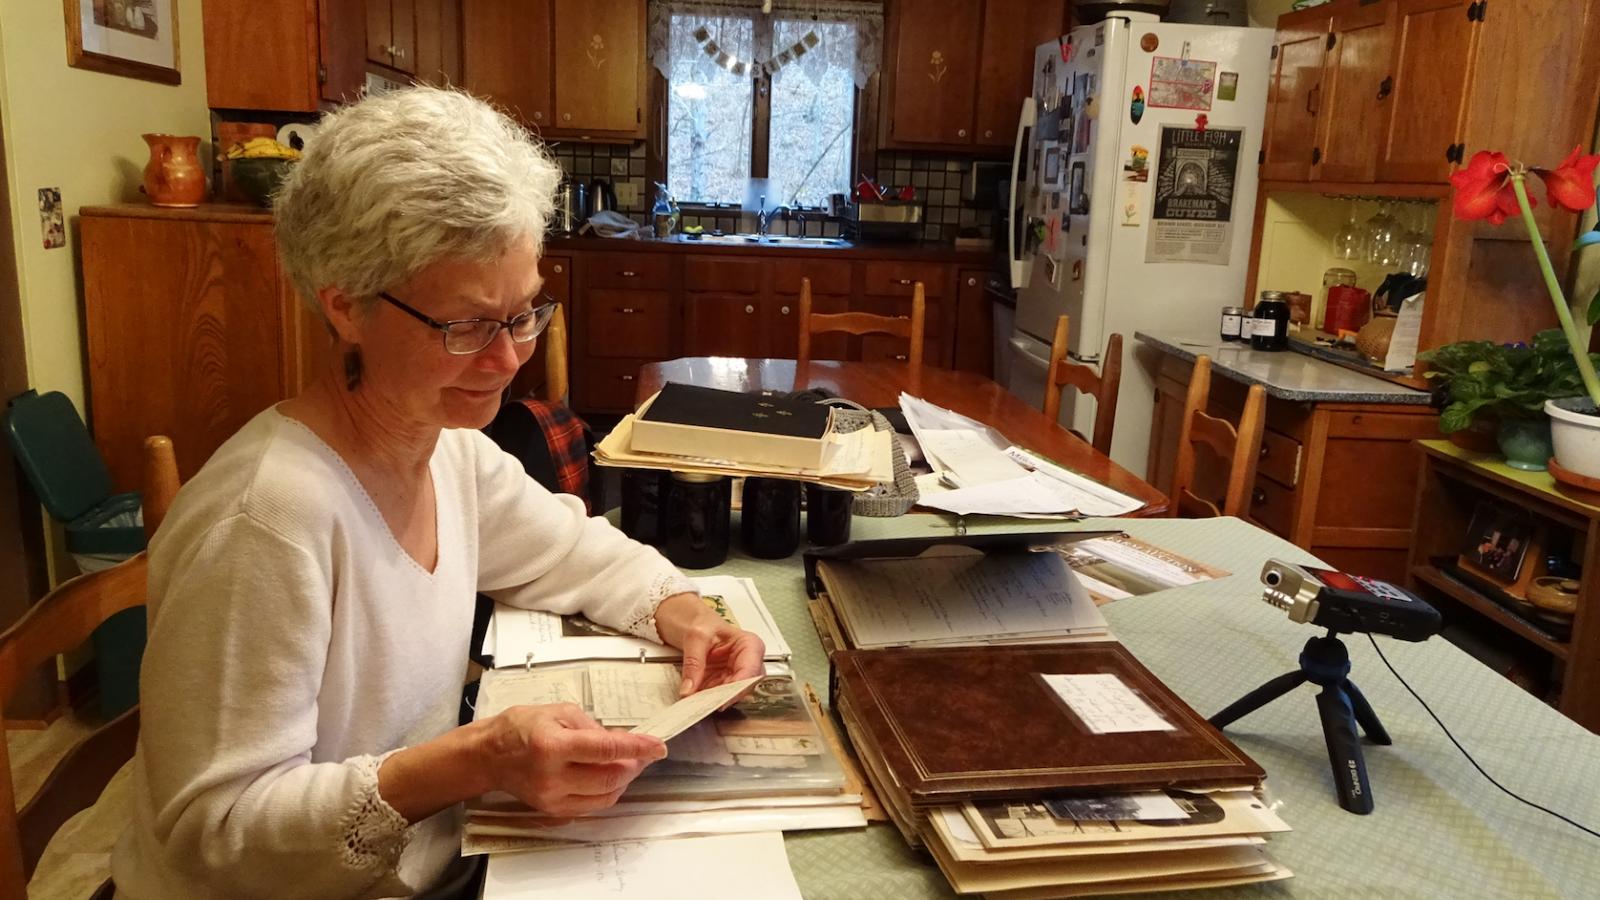 Barb Bradbury sitting amidst documents, photos, and ephemera in her kitchen.